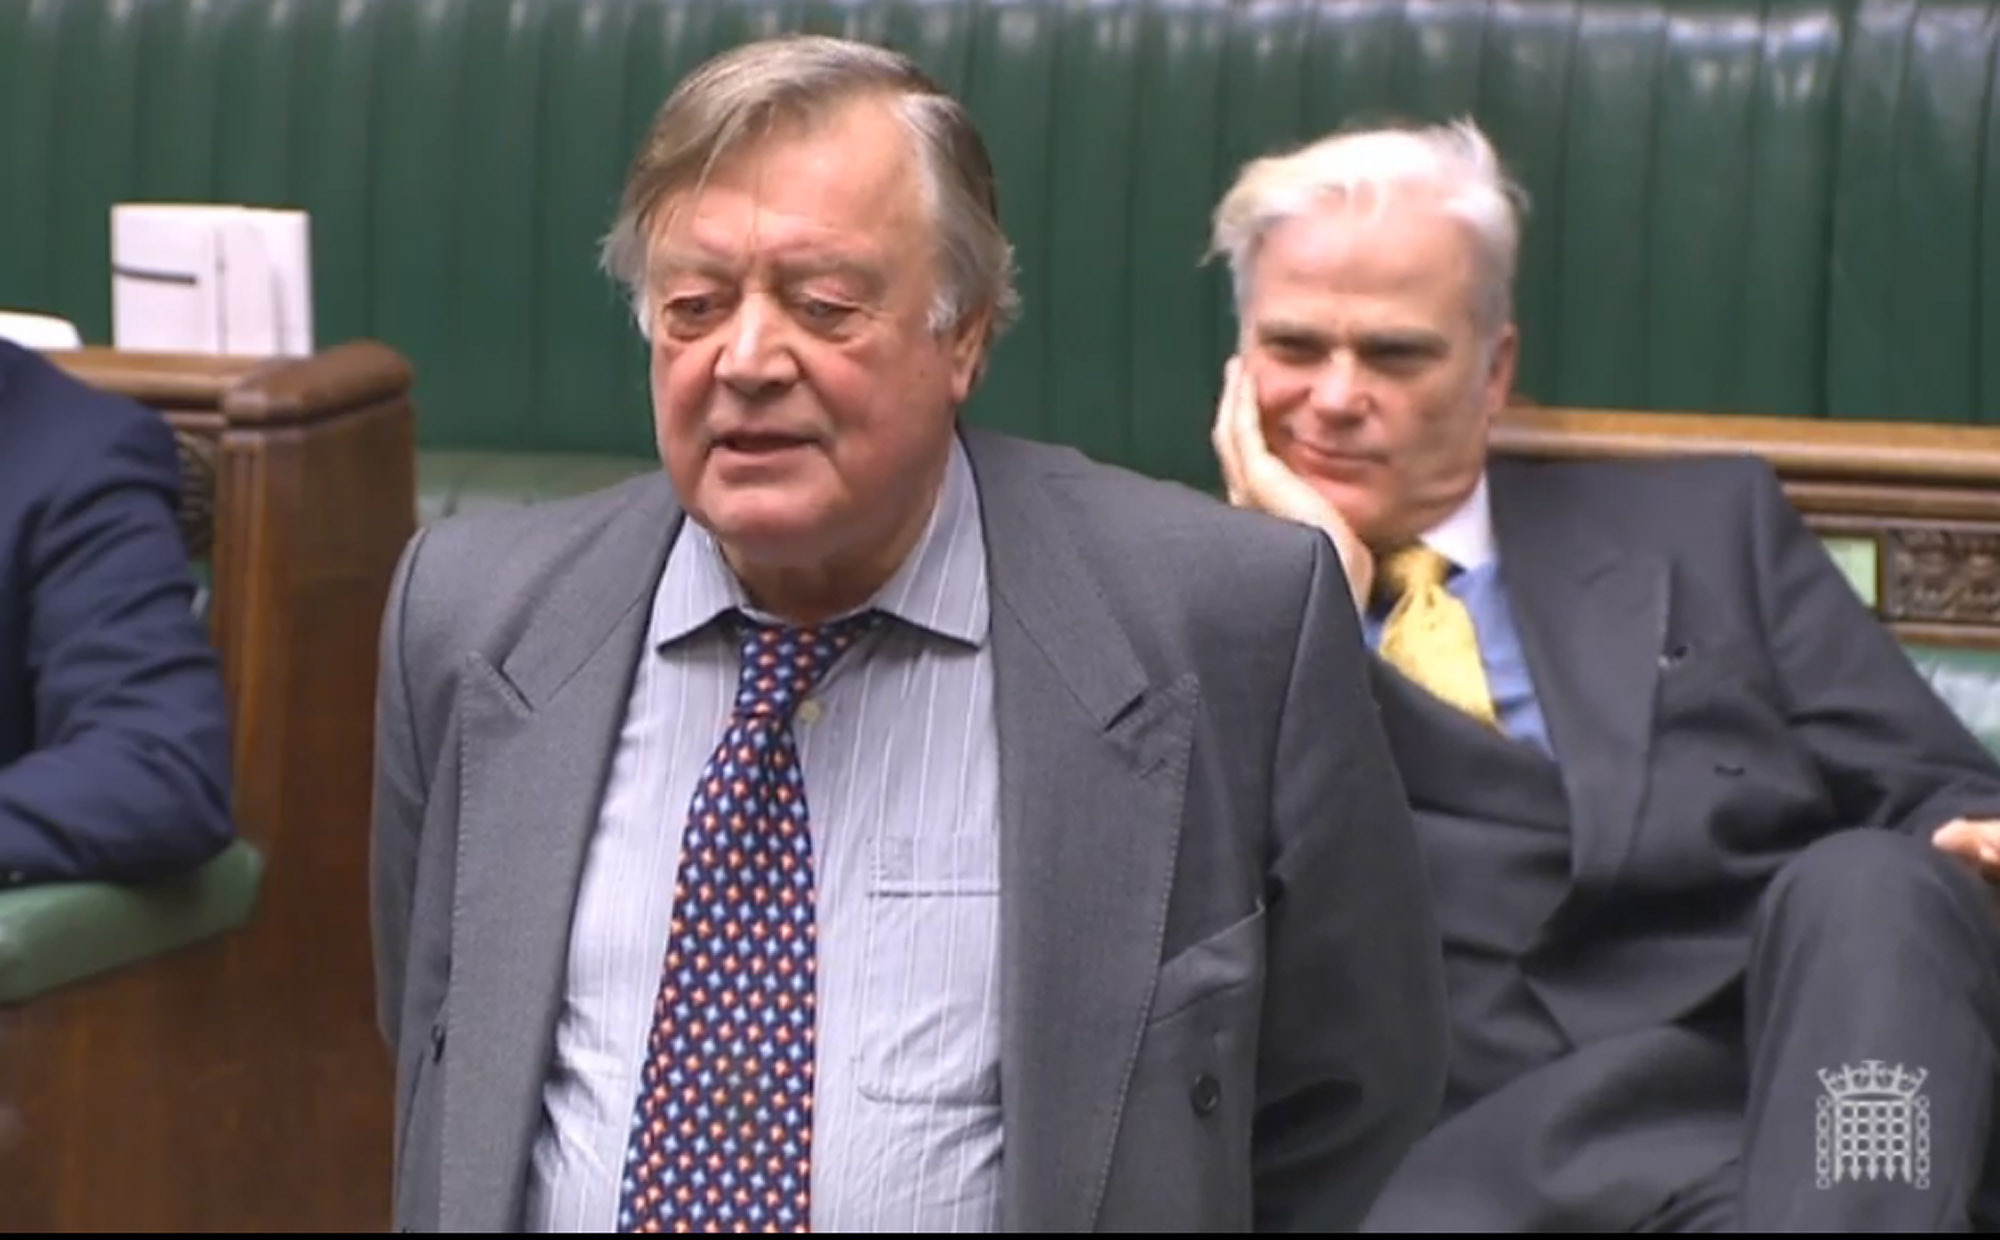 Ex-chancellor Ken Clarke delivered mocking comments to the Foreign Secretary